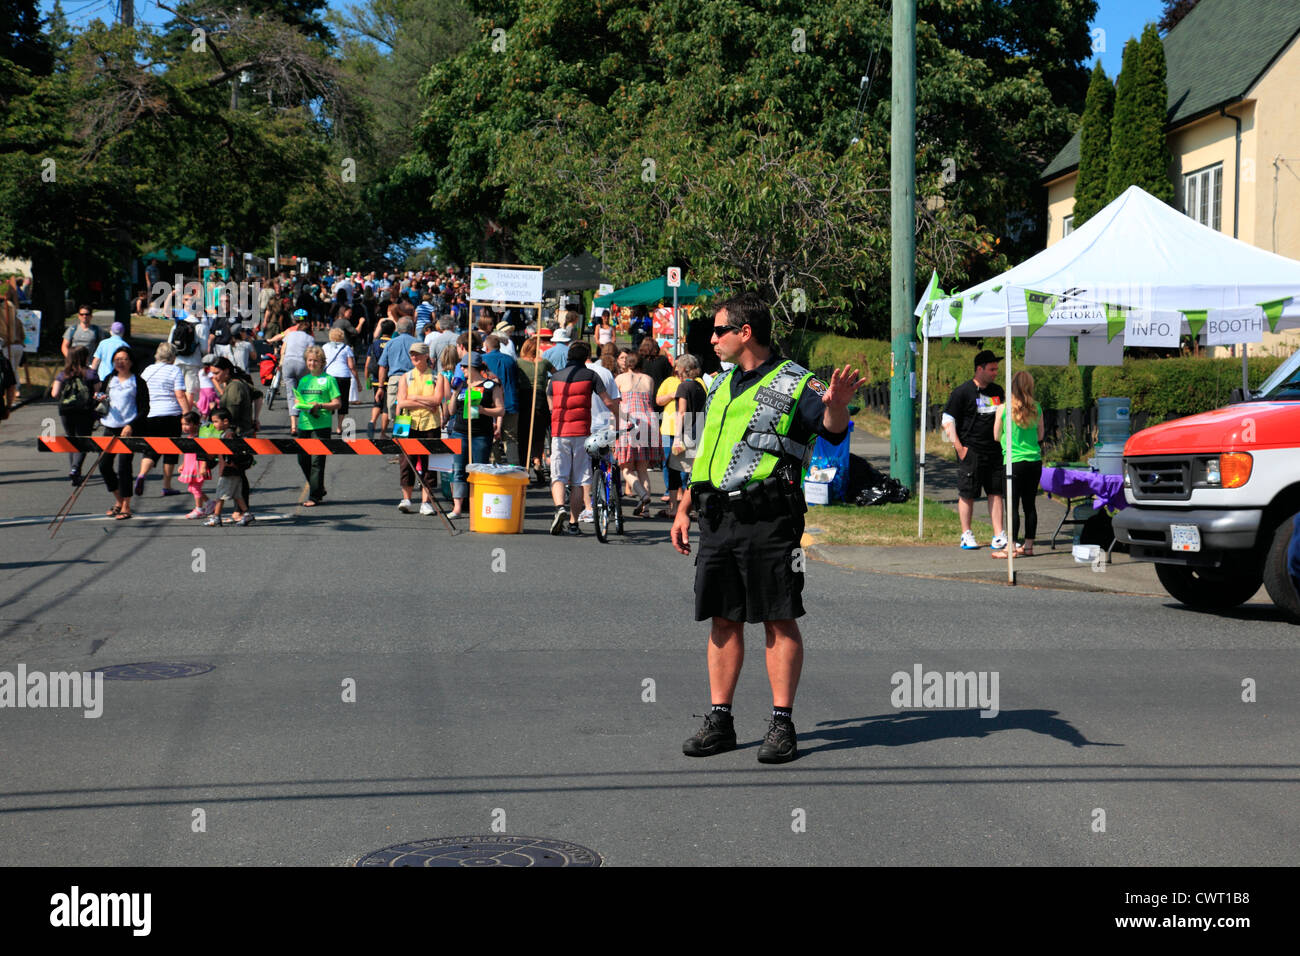 police man directing traffic - Stock Image